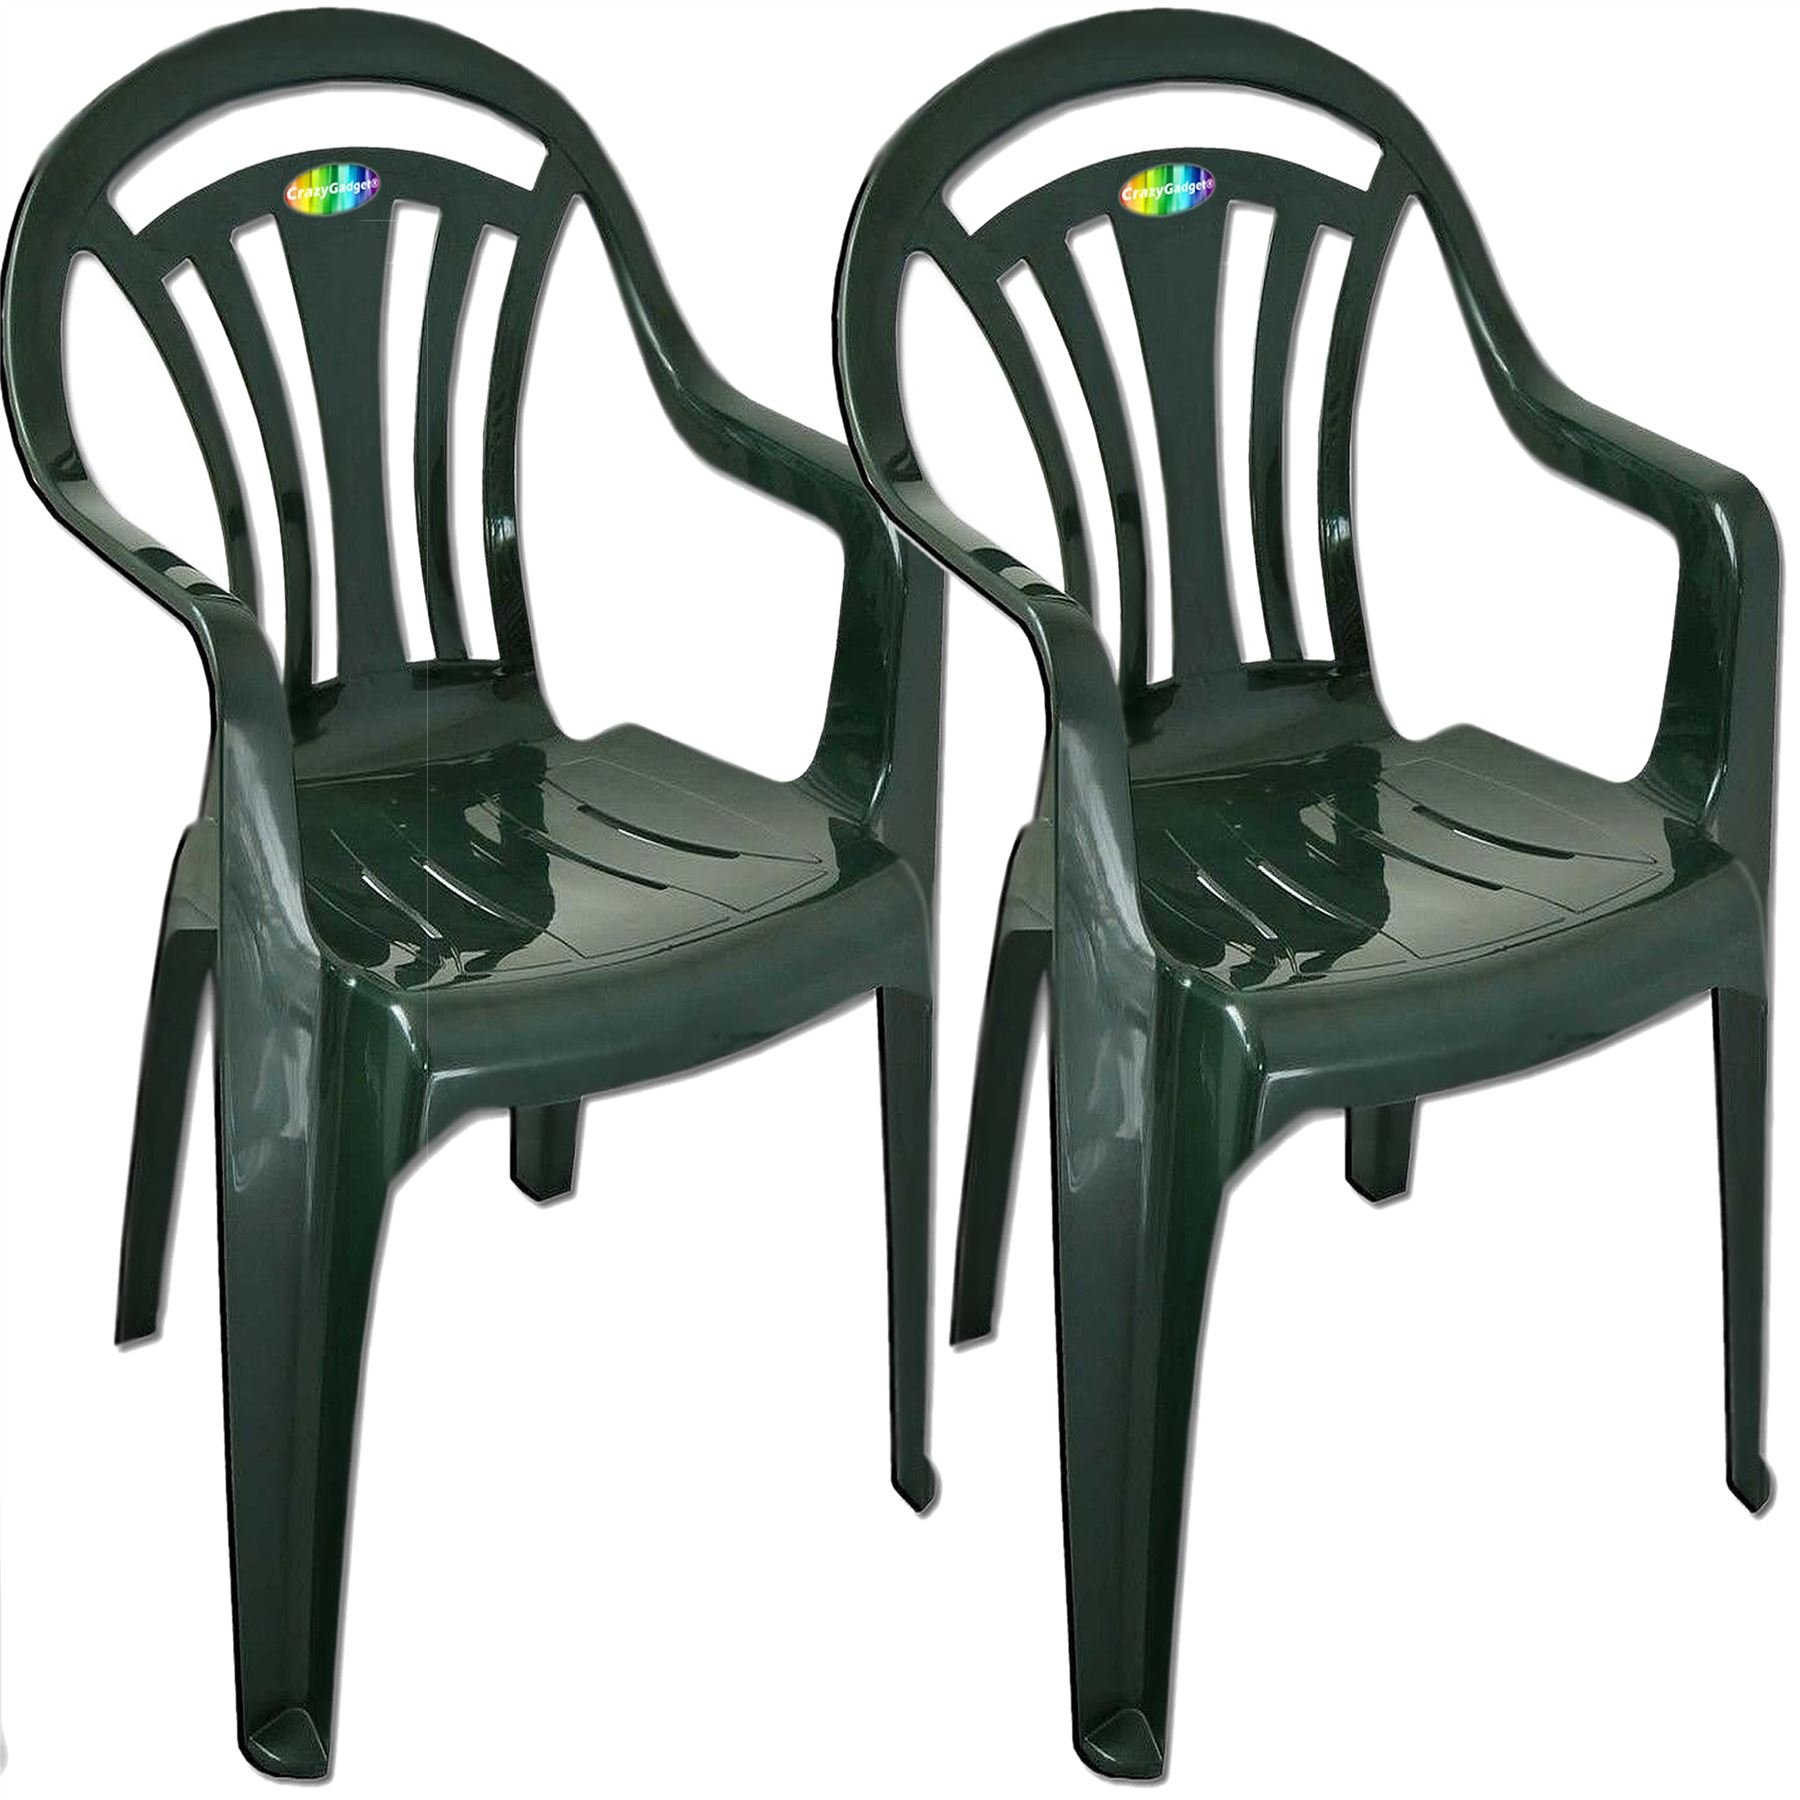 Plastic Garden Low Back Chair Stackable Patio Outdoor Party Seat Chairs Picni